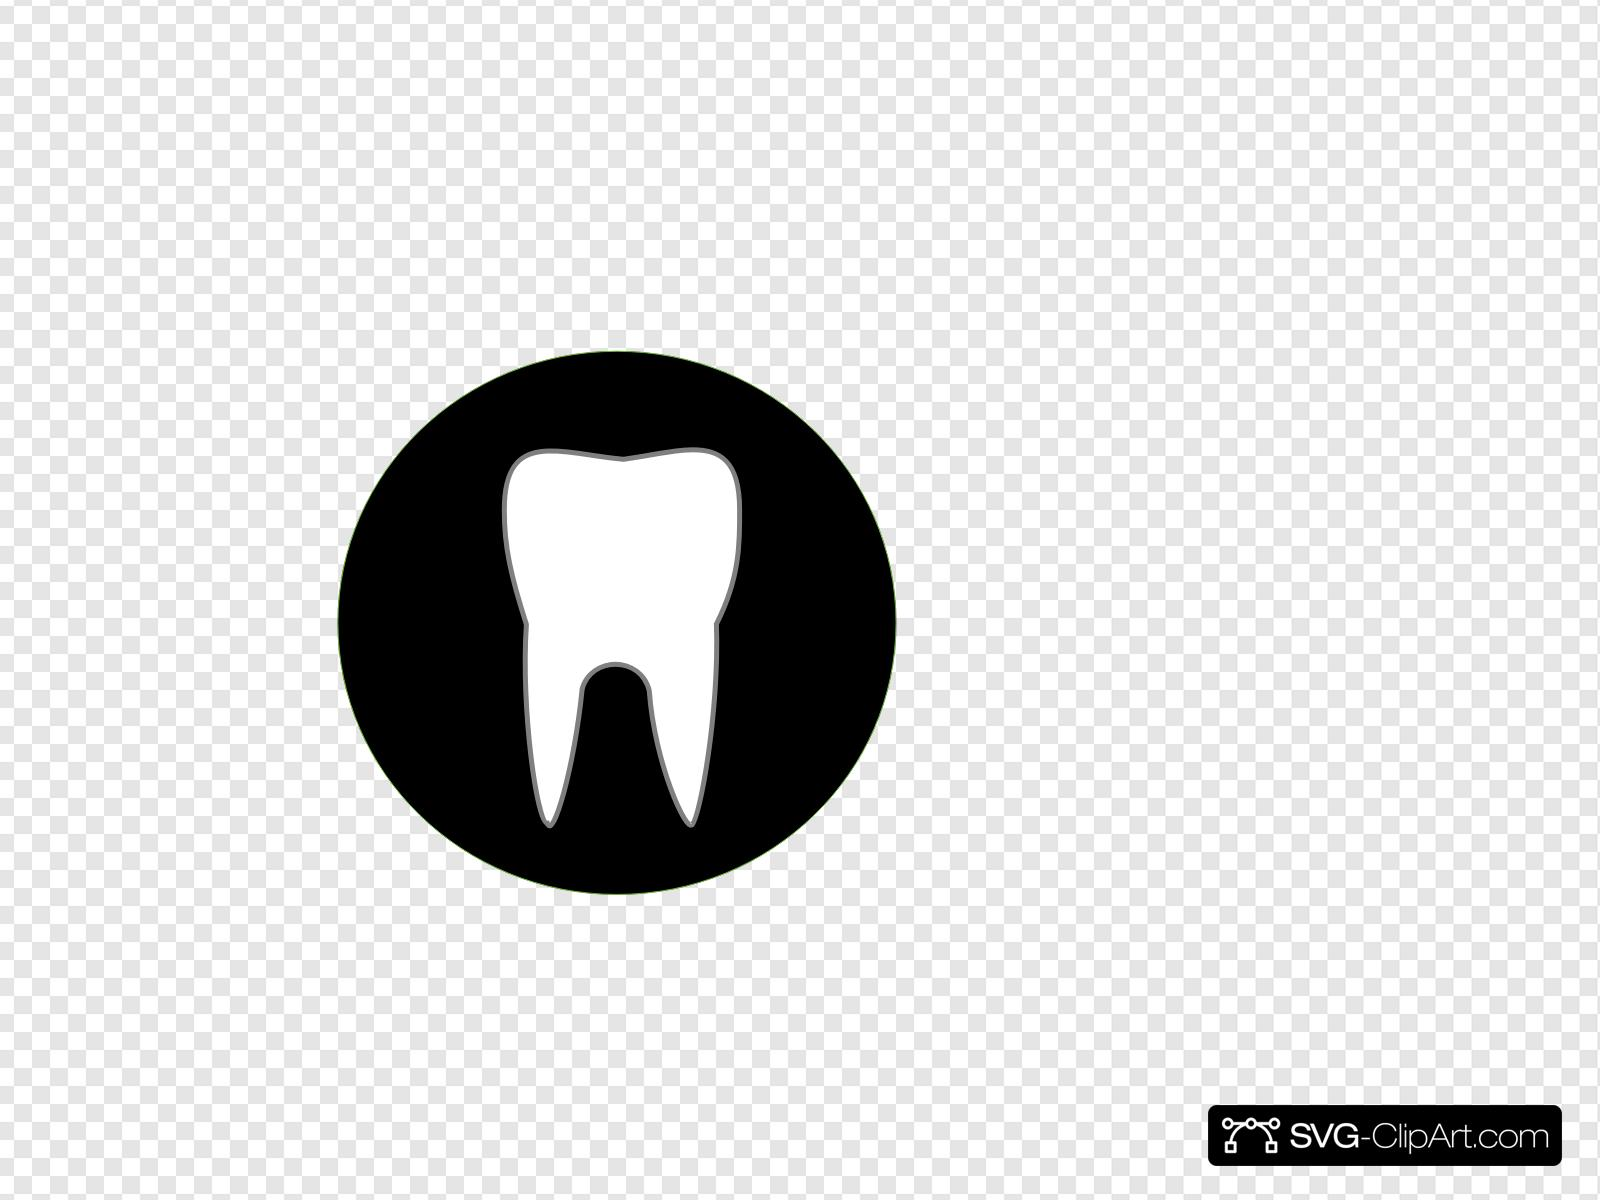 Black Tooth Clip art, Icon and SVG.